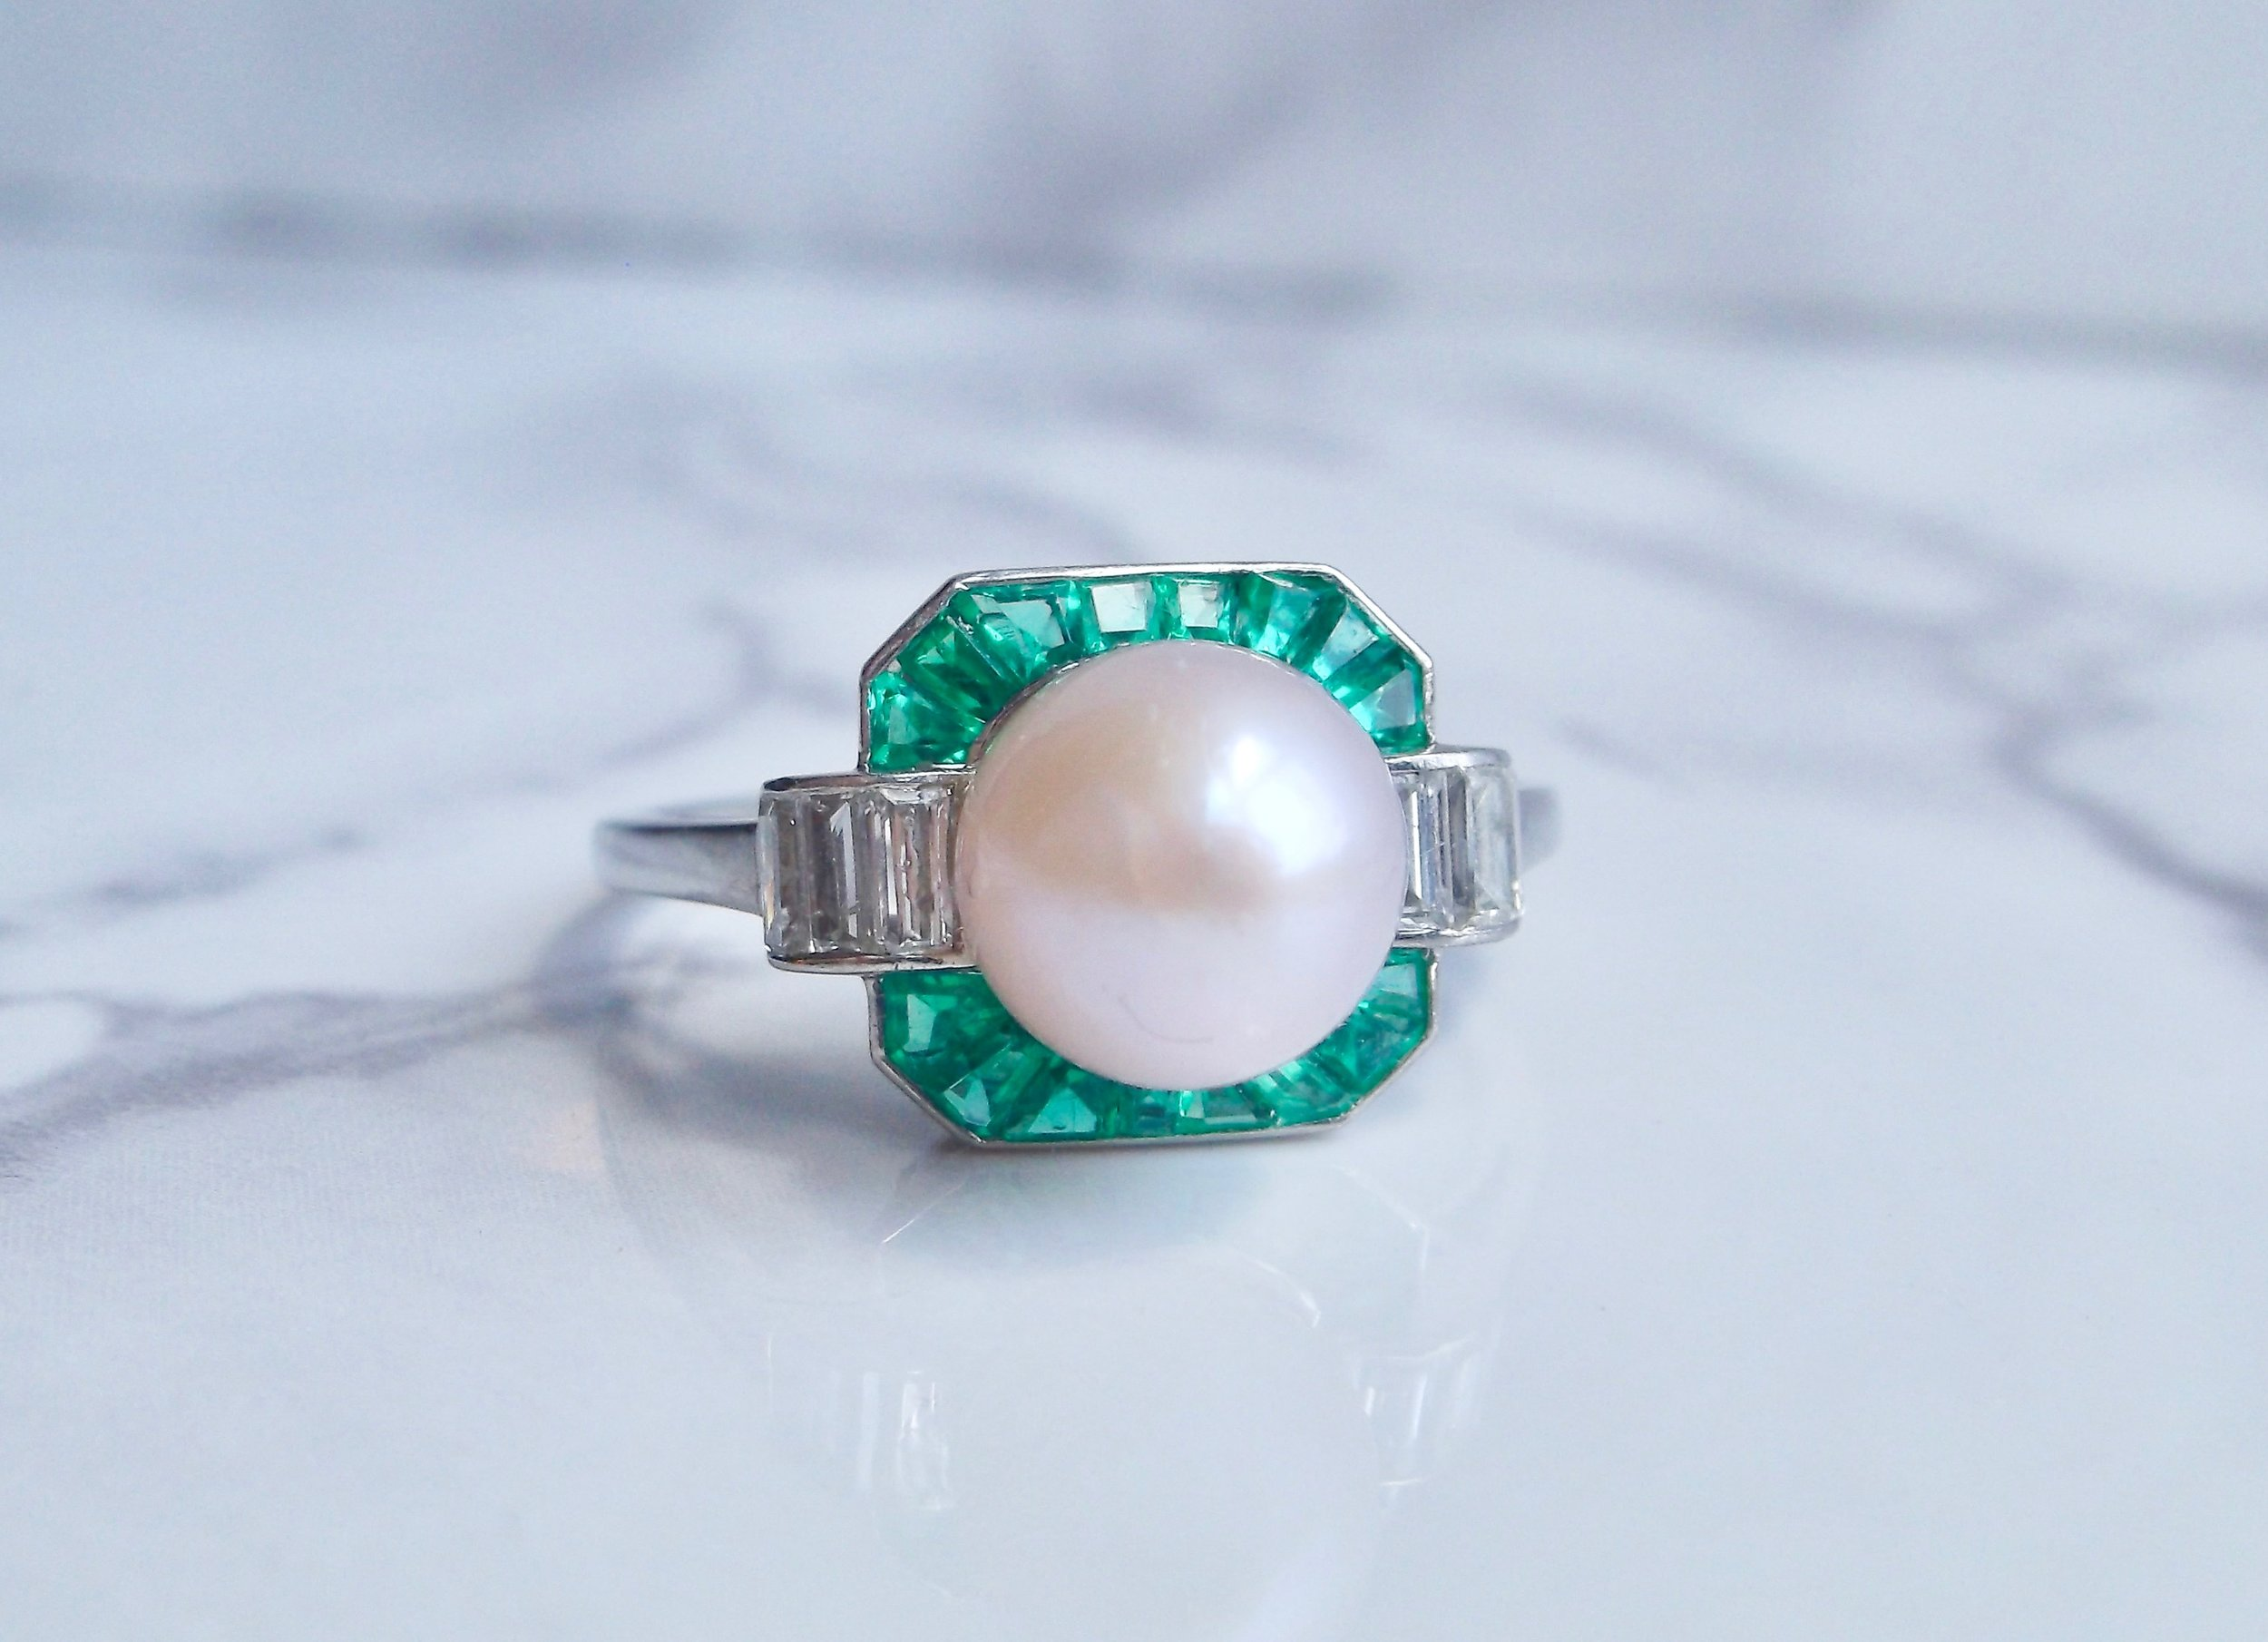 Fabulous 1920's pearl, emerald and diamond ring set in platinum. The ring features a beautiful white pearl with rose overtone, surround by approximately 1.00 carats in emeralds with step cut diamond details on the side. Southern elegance meets Art Deco style! Shop this ring  HERE